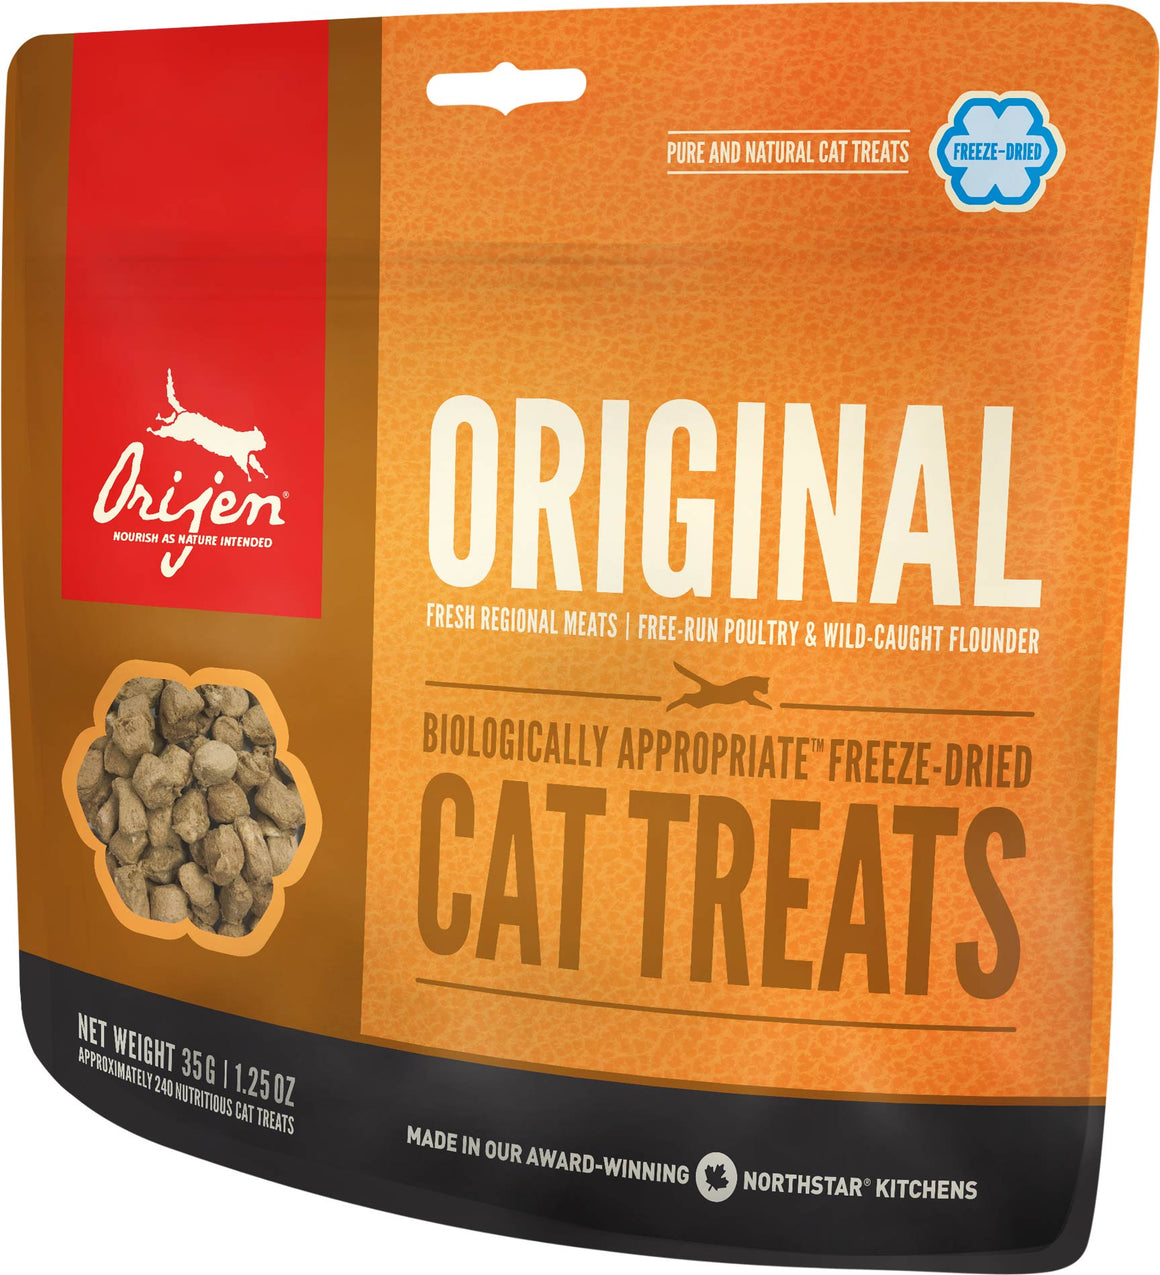 Orijen Original Freeze-Dried Grain-Free Cat Treats-Le Pup Pet Supplies and Grooming